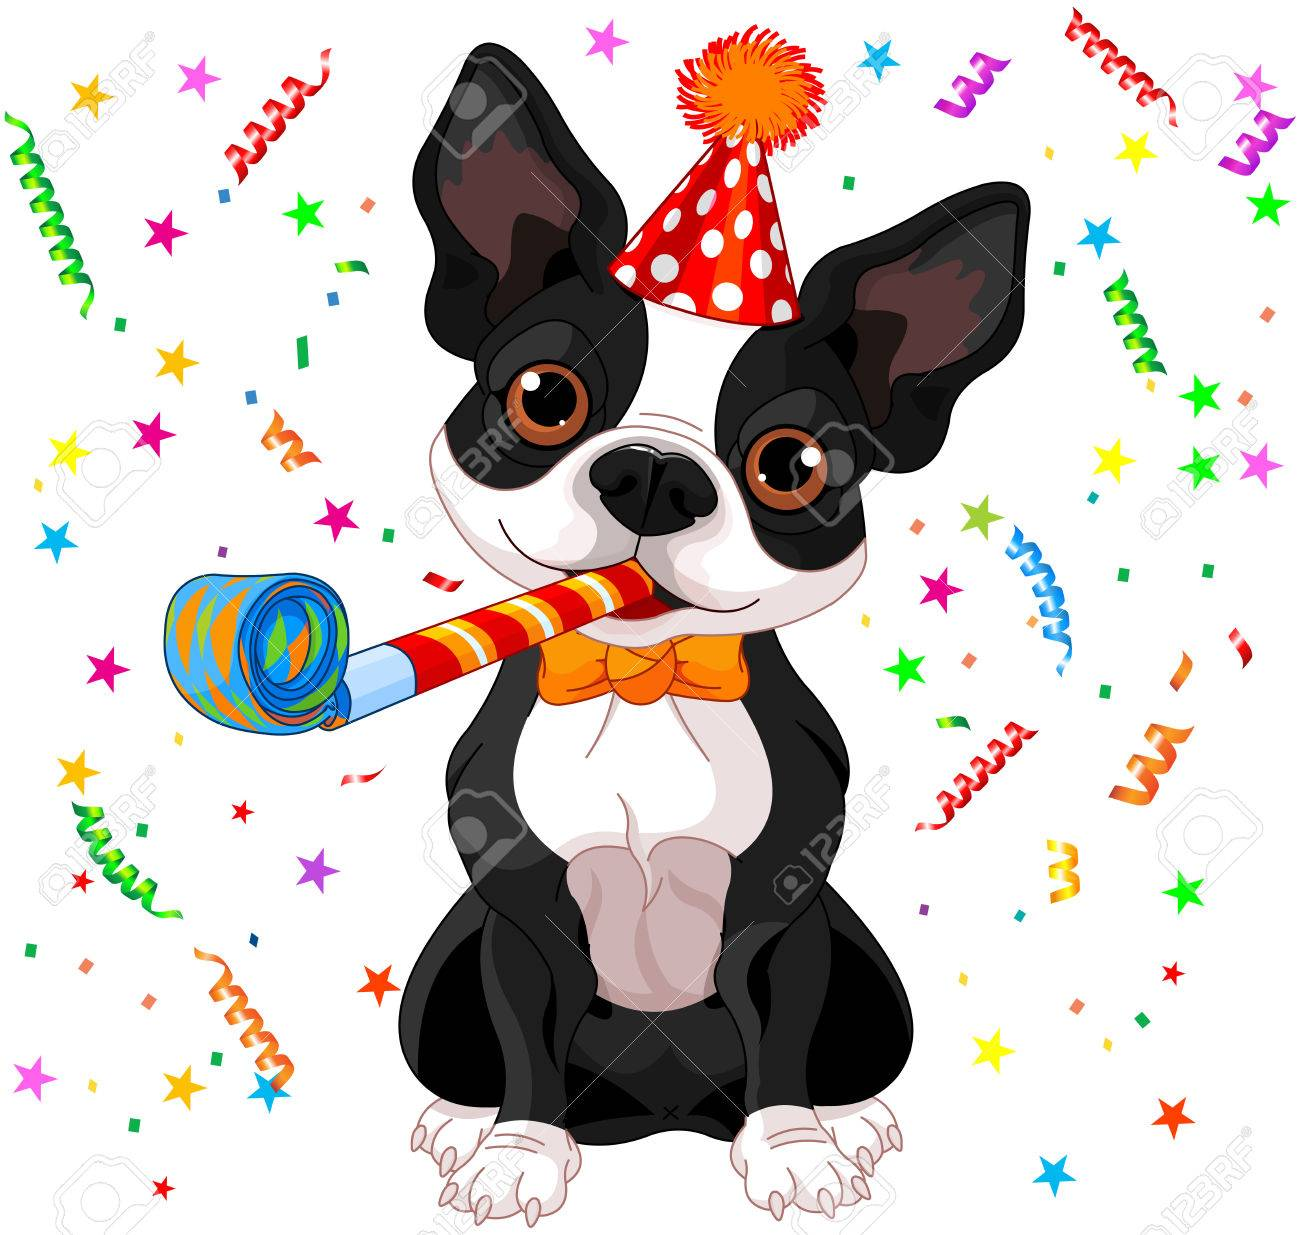 Cherche club canin en Ille-et-Vilaine (35) 35588778-illustration-of-cute-boston-terrier-celebrating